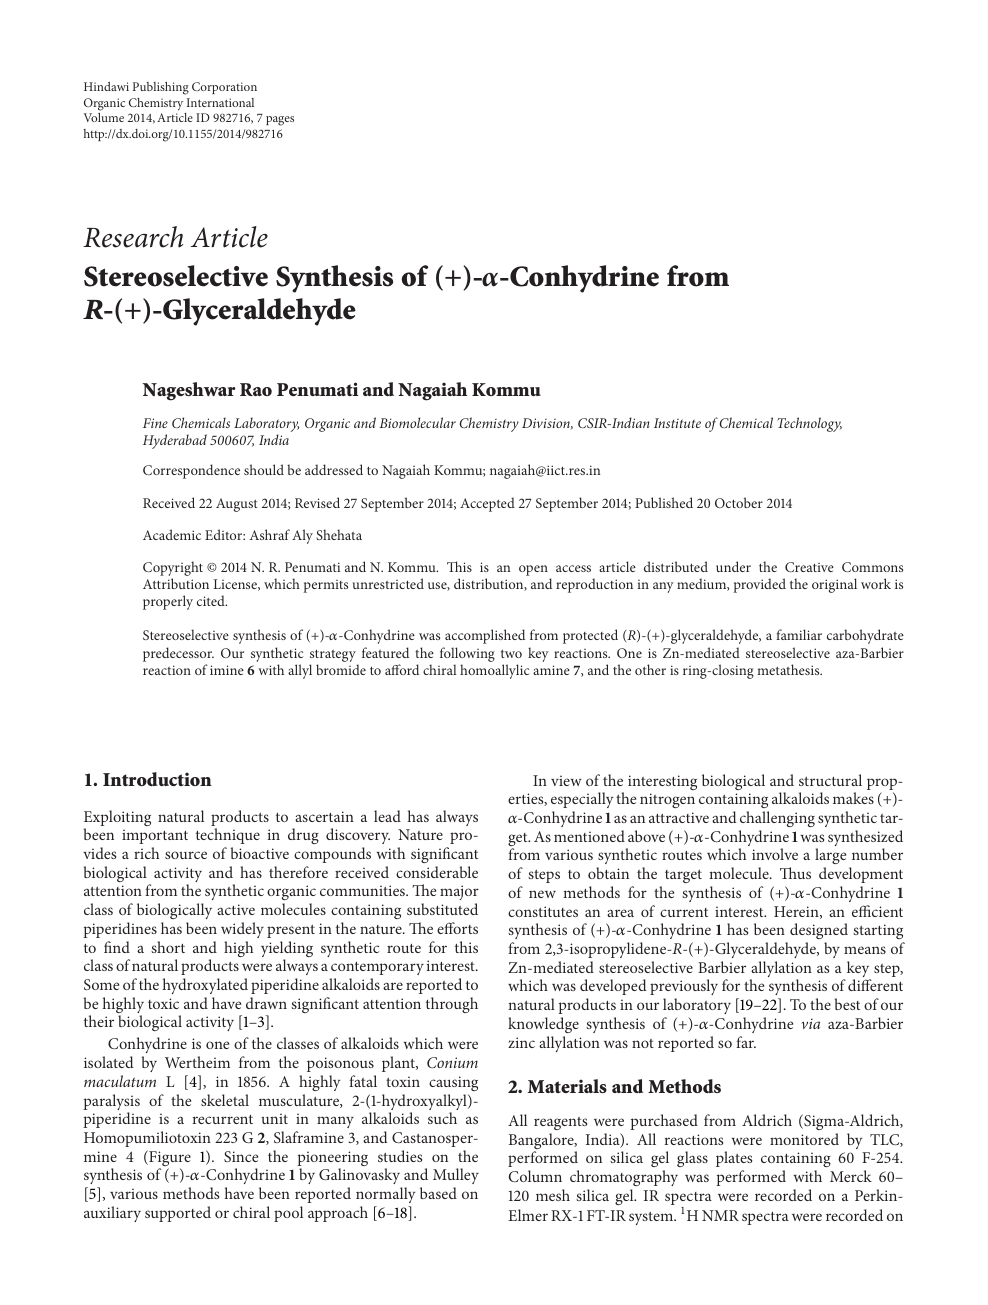 Stereoselective Synthesis of (+)- α -Conhydrine from R -(+